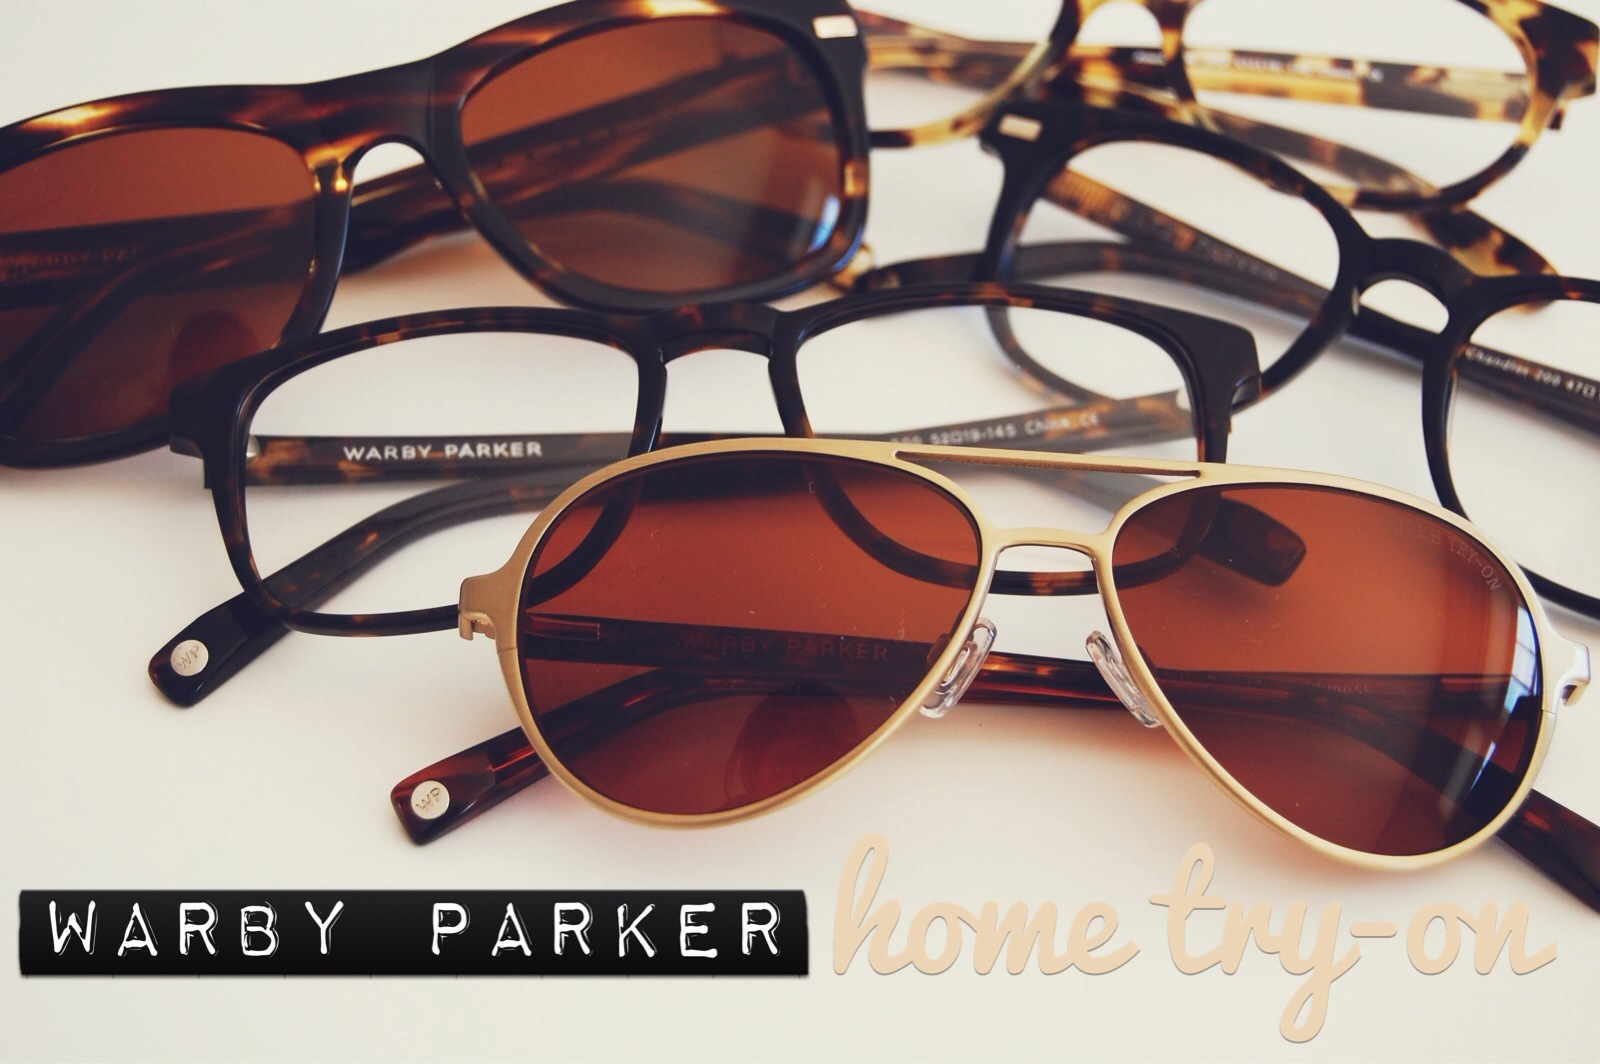 4e3511e7fb2d Try Before You Buy: Warby Parker Edition